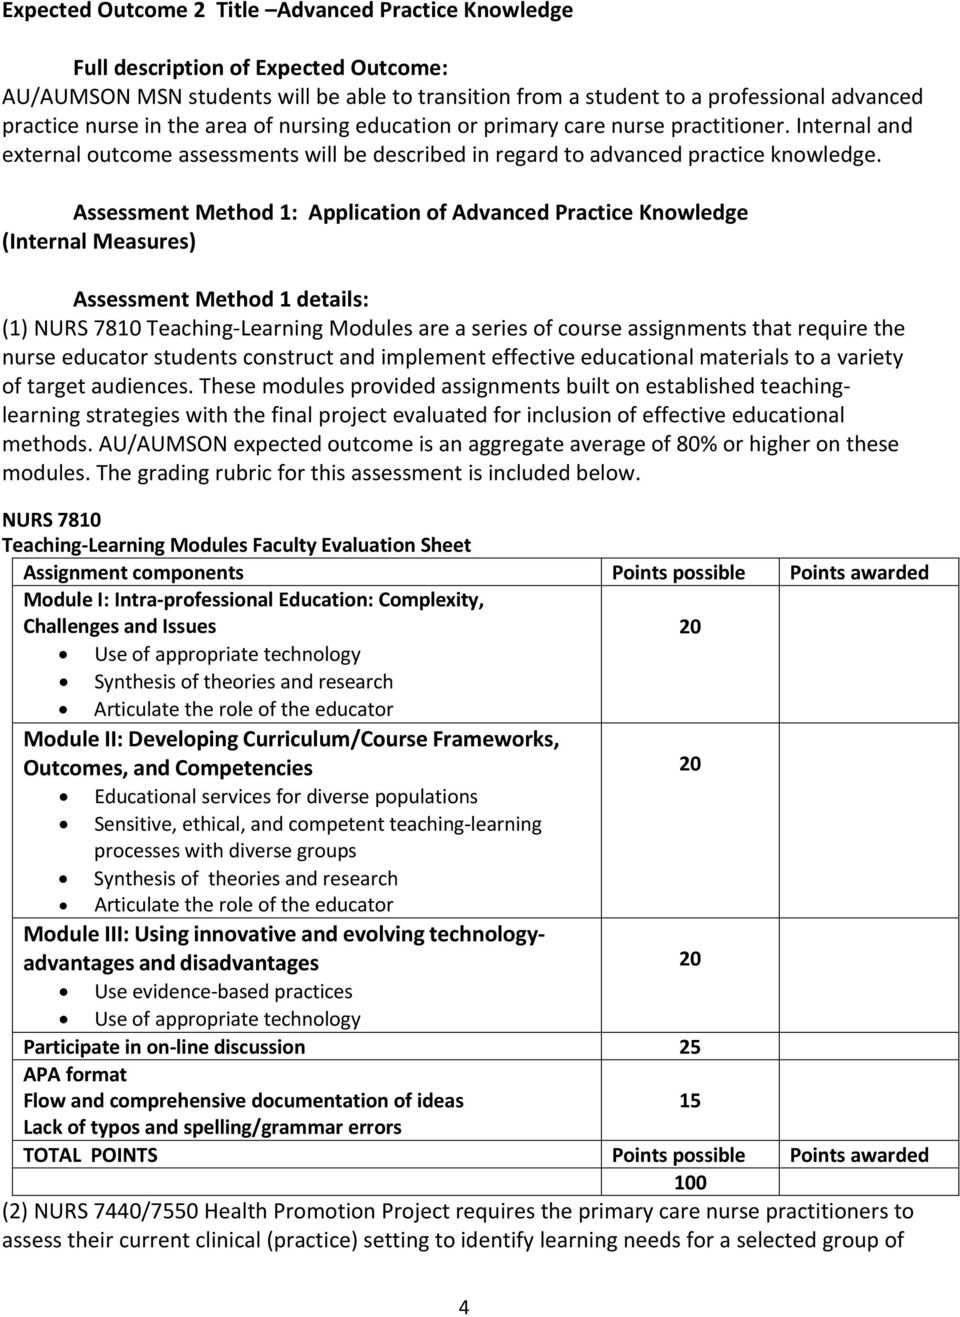 Assessment Method 1: Application of Advanced Practice Knowledge (Internal Measures) Assessment Method 1 details: (1) NURS 7810 Teaching Learning Modules are a series of course assignments that